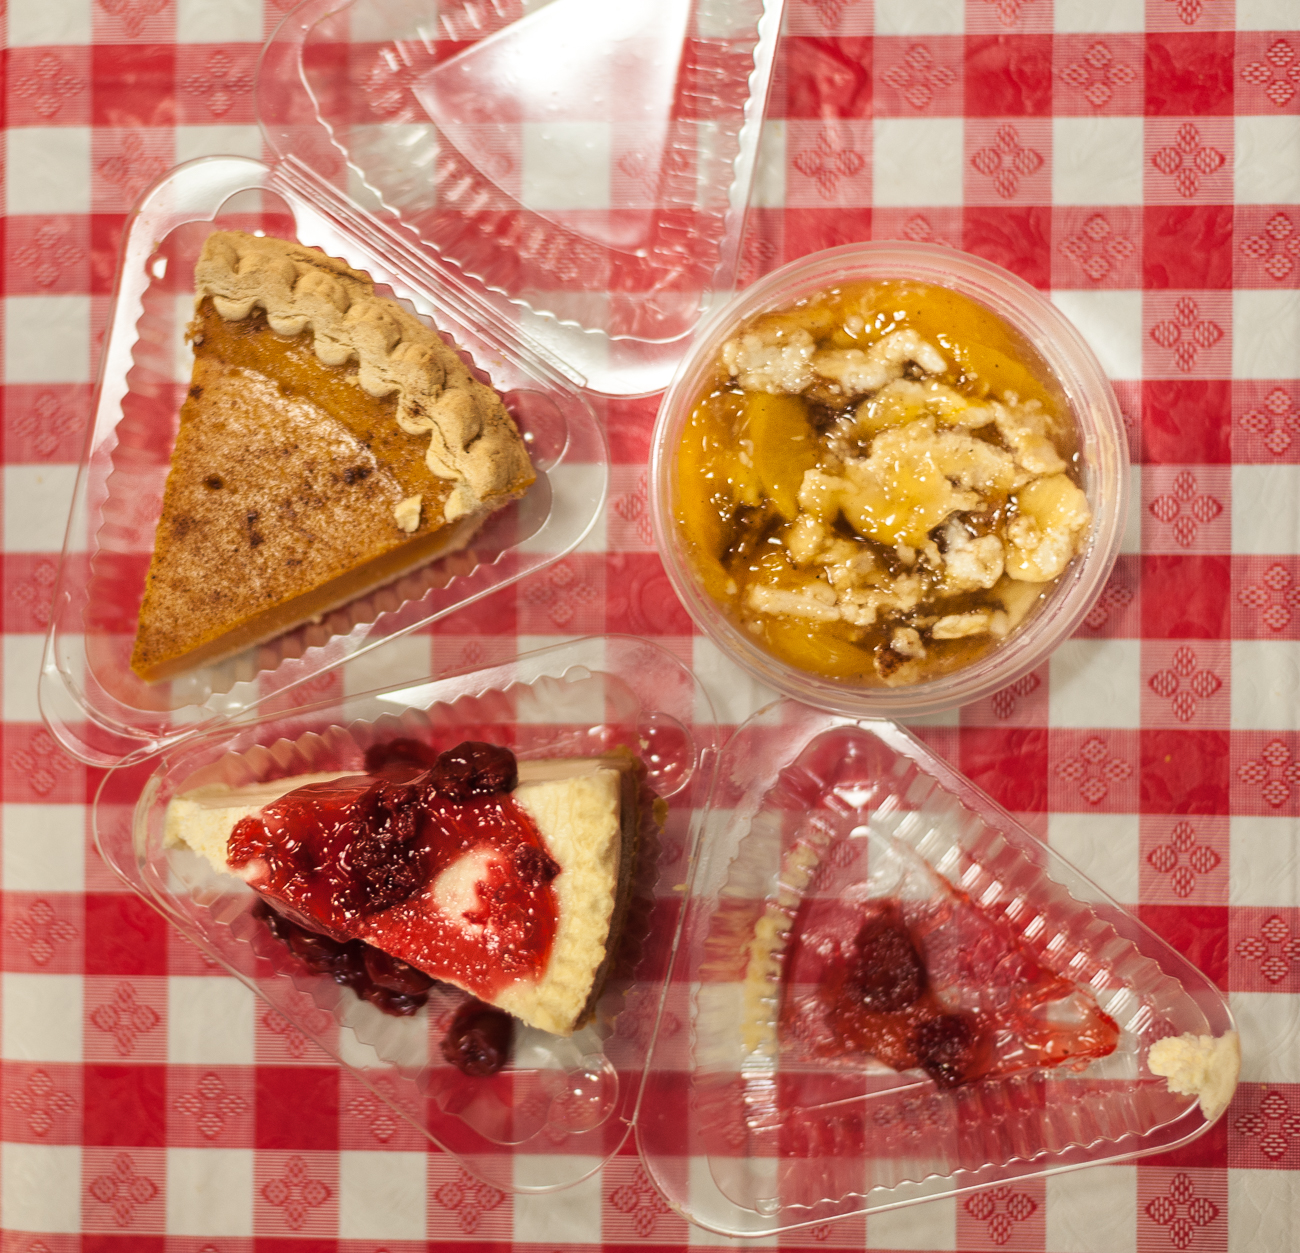 Custard pie, strawberry cheesecake, and sweet potato pie / Image: Kellie Coleman // Published: 6.19.20